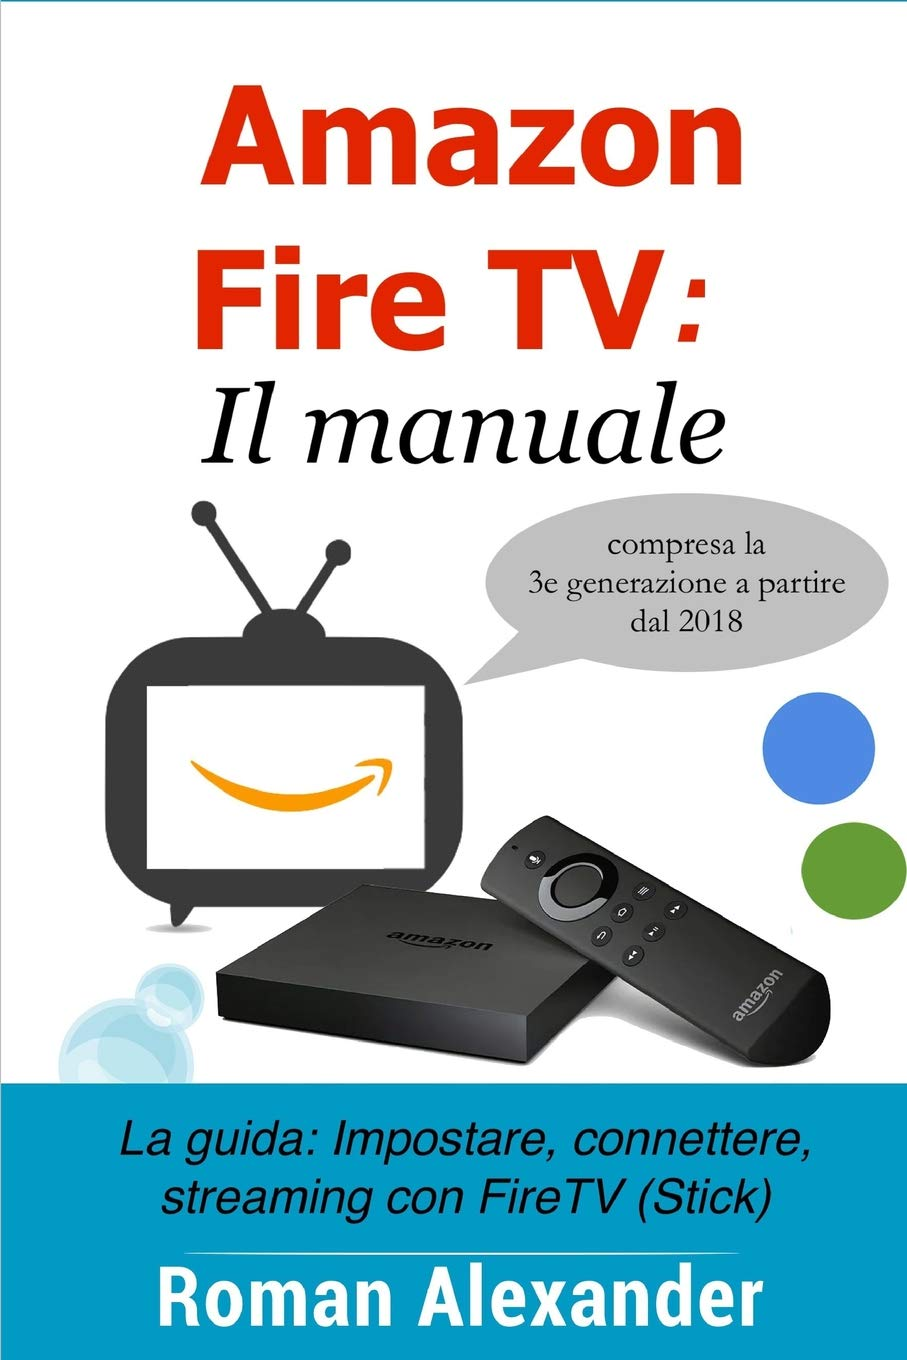 Amazon Fire TV: Il manuale: La guida: Impostare, connettere, streaming con FireTV Stick Smart Home System: Amazon.es: Alexander, Roman: Libros en idiomas extranjeros